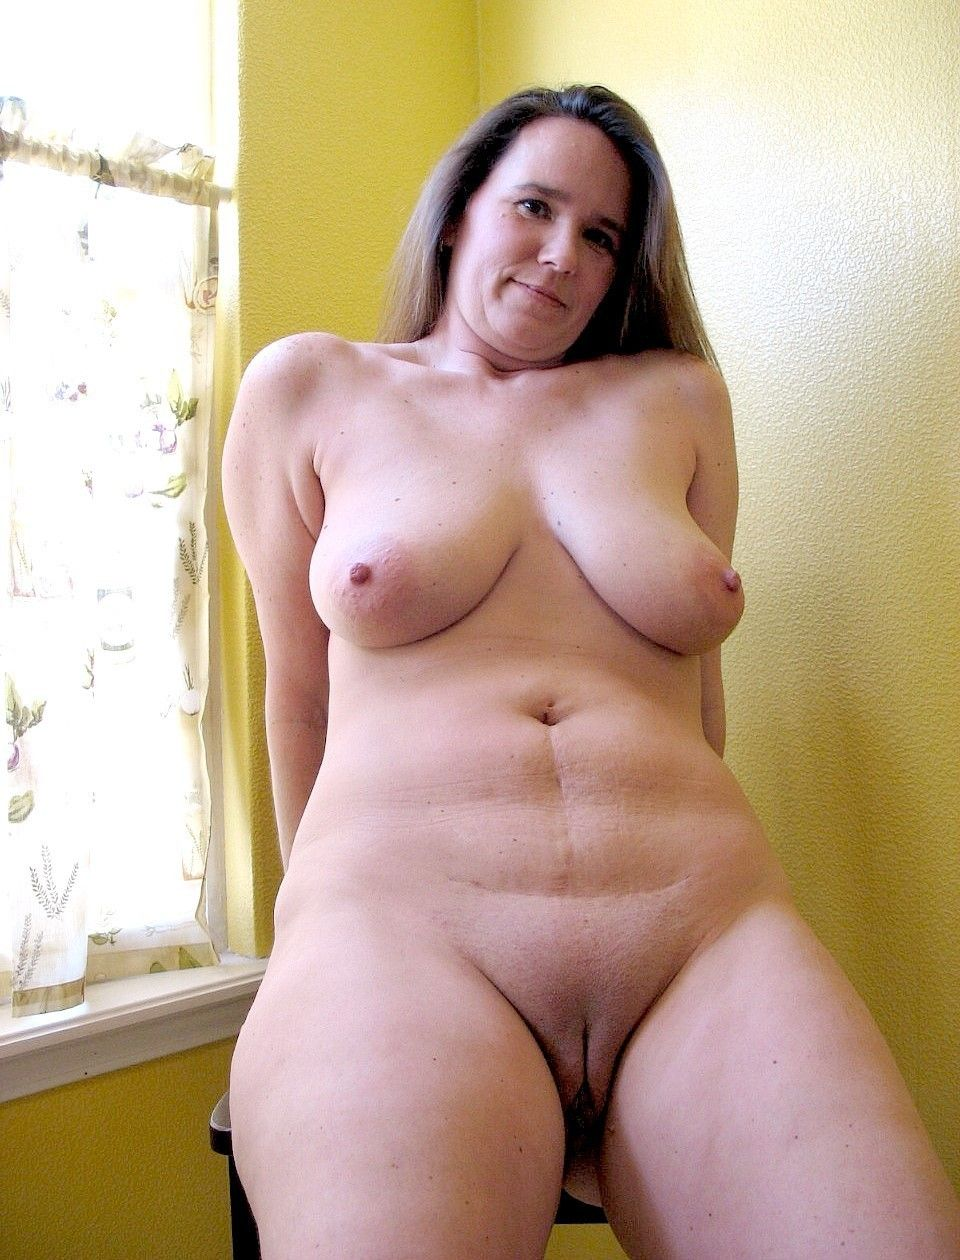 Bbw Chubby Porno chubby lindsey bbw - photos and other amusements. comments: 3